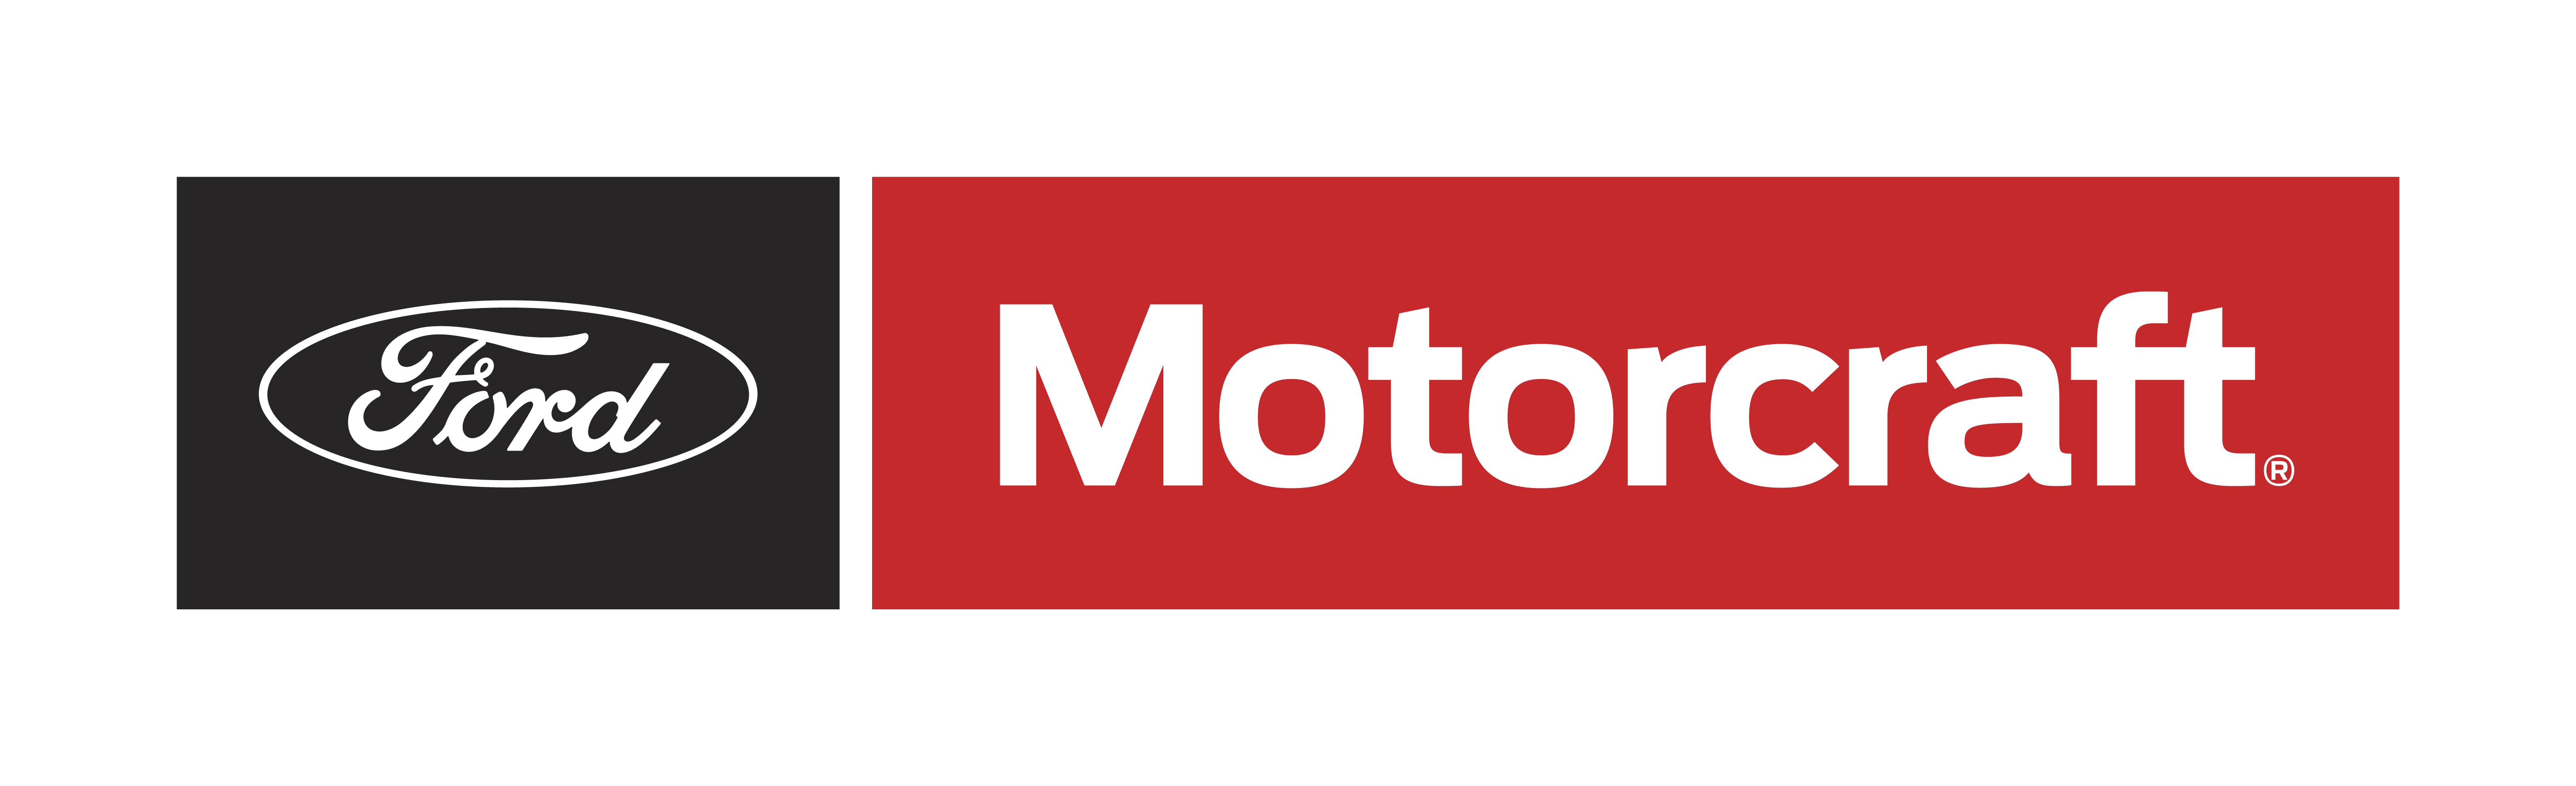 Coupon for MOTORCRAFT® PREMIUM CONVENTIONAL WIPER BLADES, $19.96 MSRP*